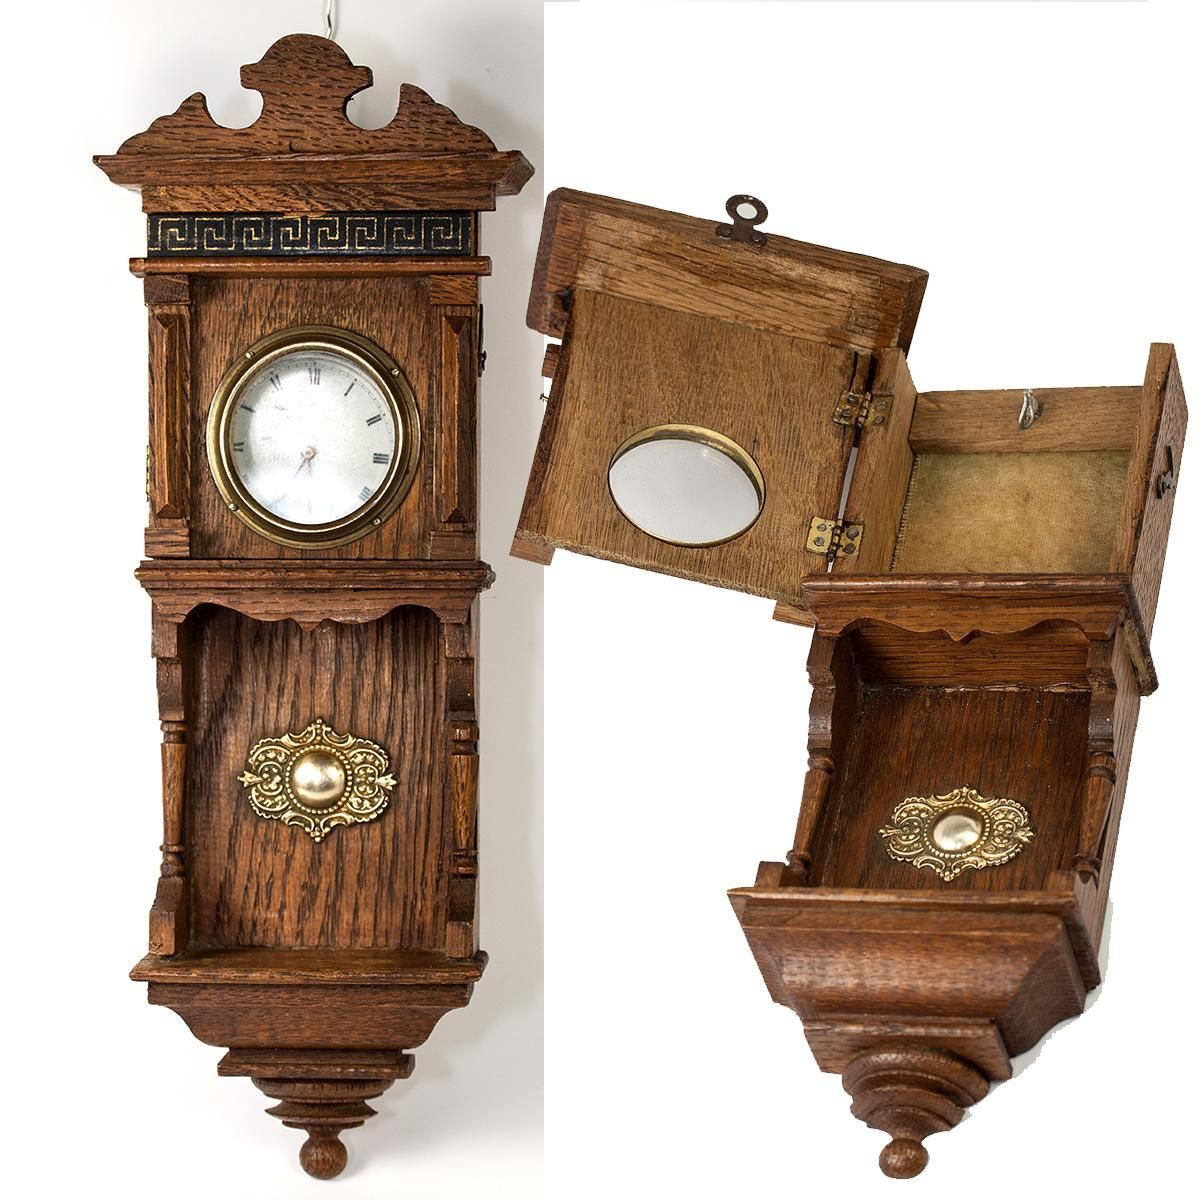 Antique French Miniature Wall Clock Casing Is A Pocket Watch Holder Stand Great For Doll House Bru Etc French Antiques Clock Wall Clock